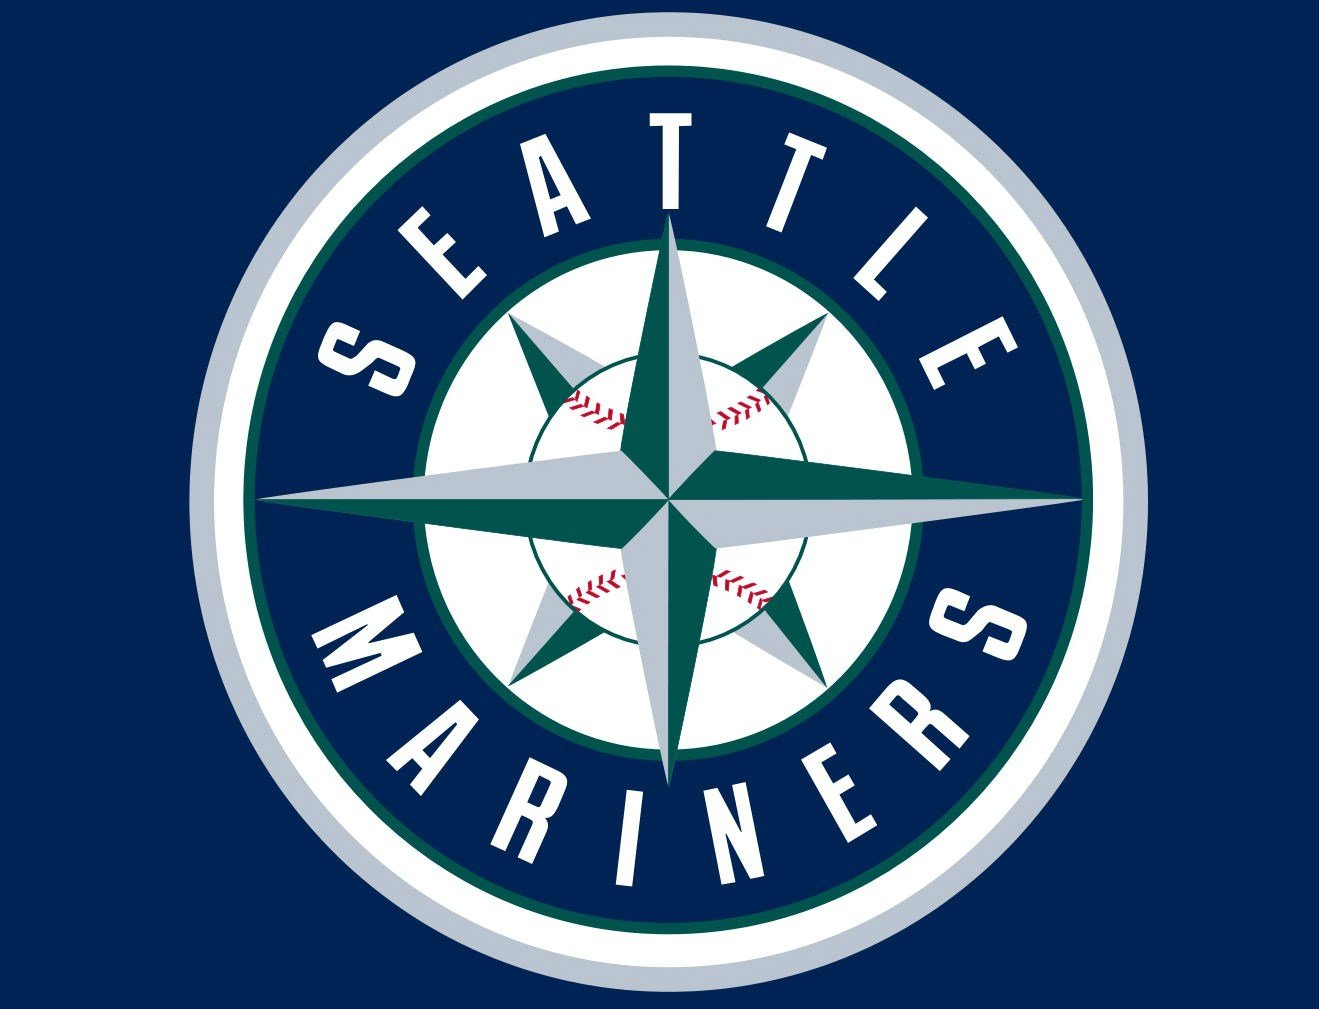 Mariners are now 33-34 on the season